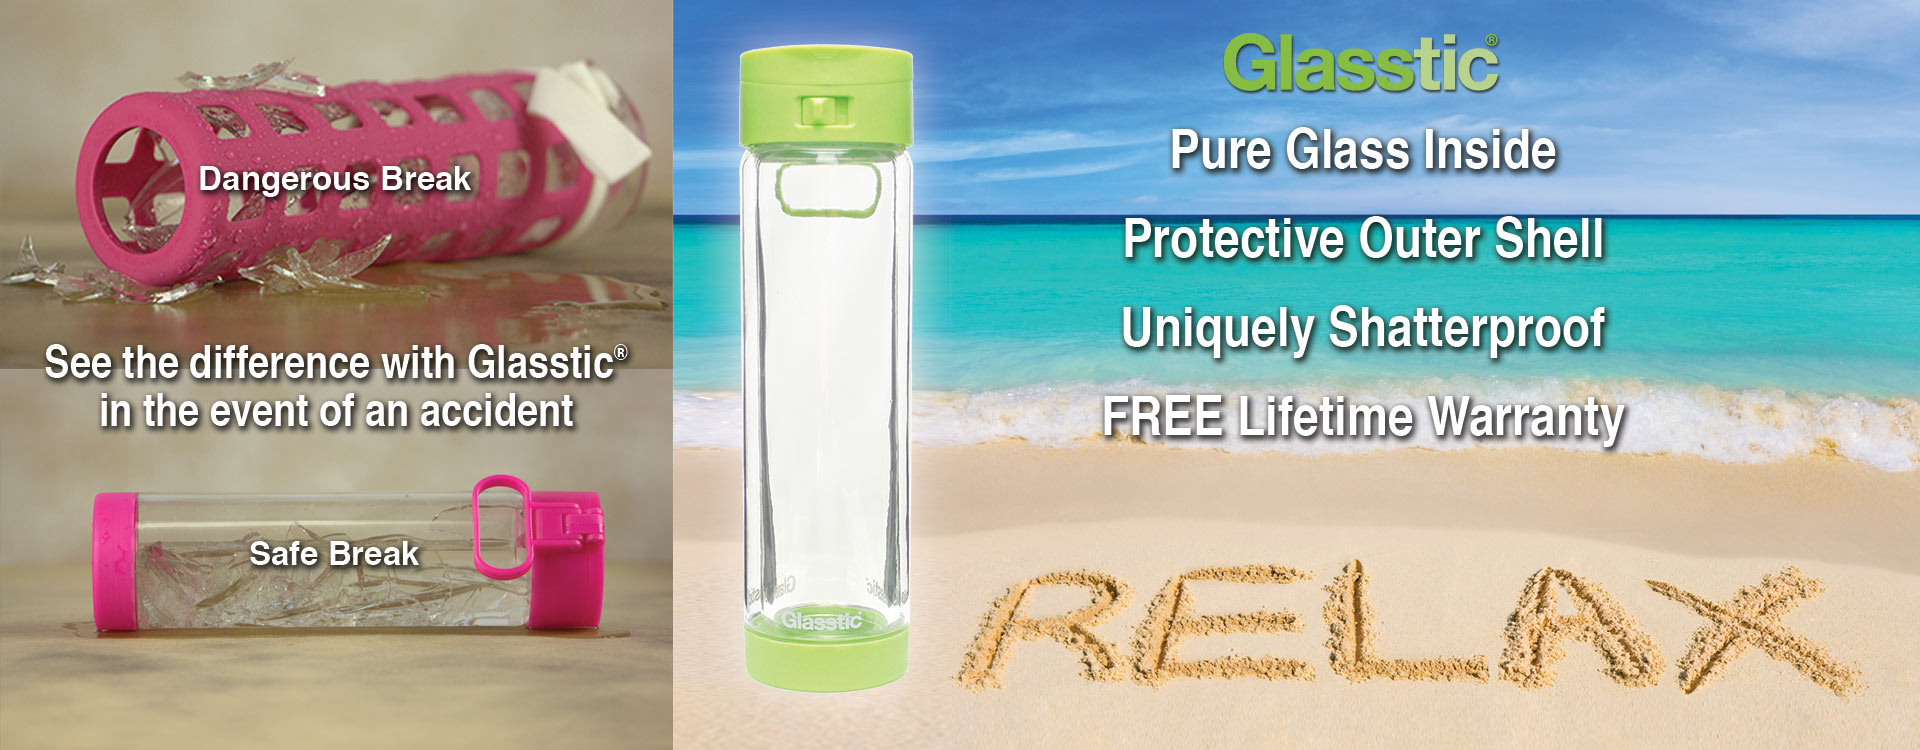 Glasstic - See the difference